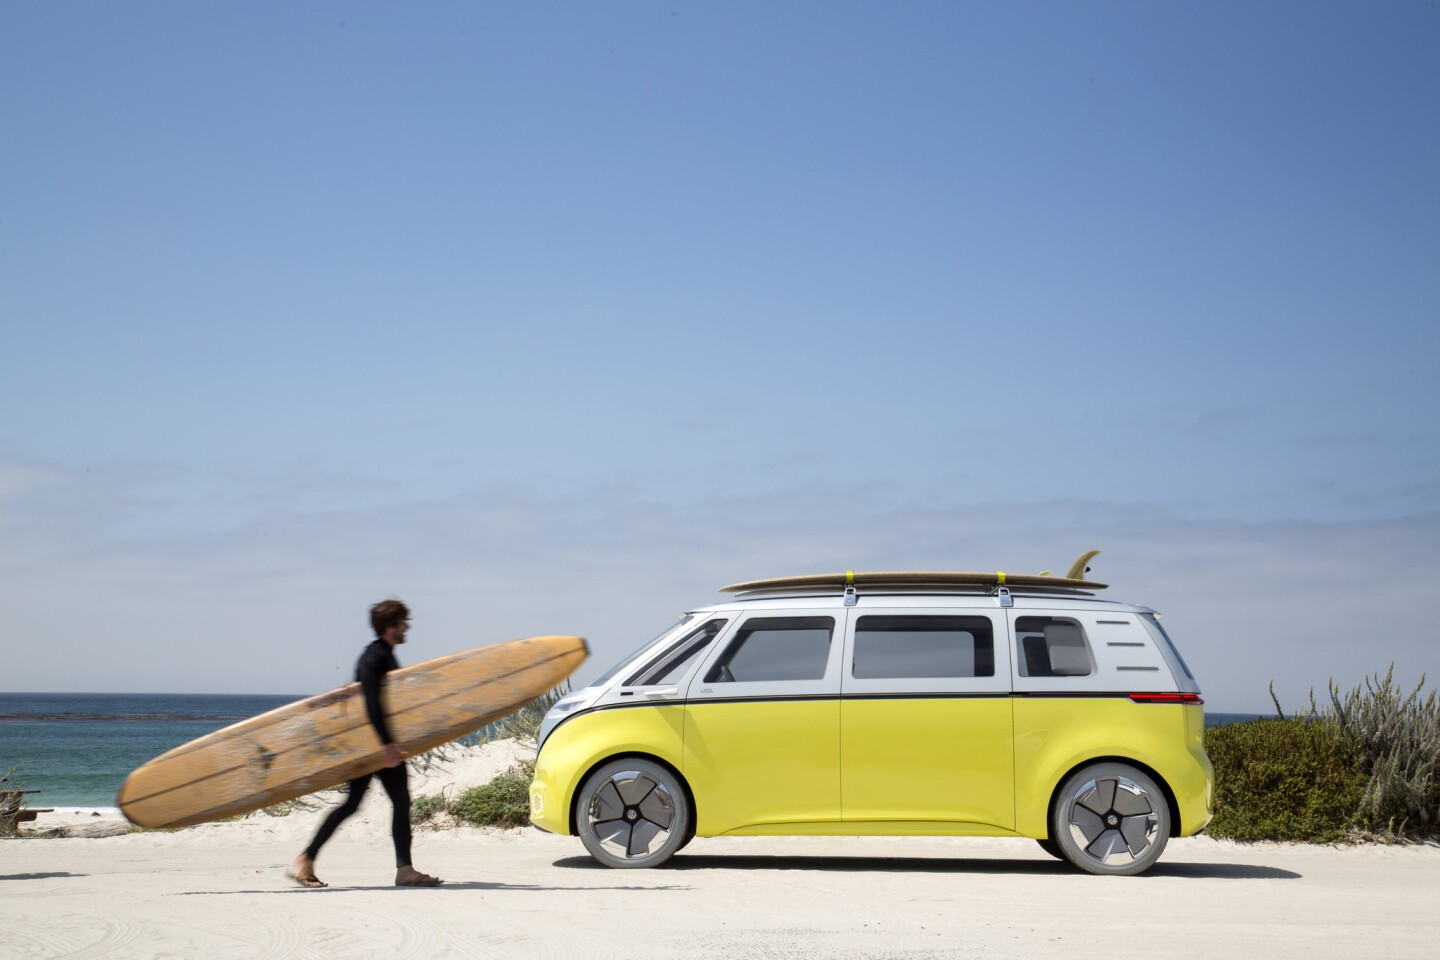 Volkswagen has announced it will bring back the most iconic vehicle of the 1960s: its VW van, returning sometime in the next two years as the I.D. Buzz.